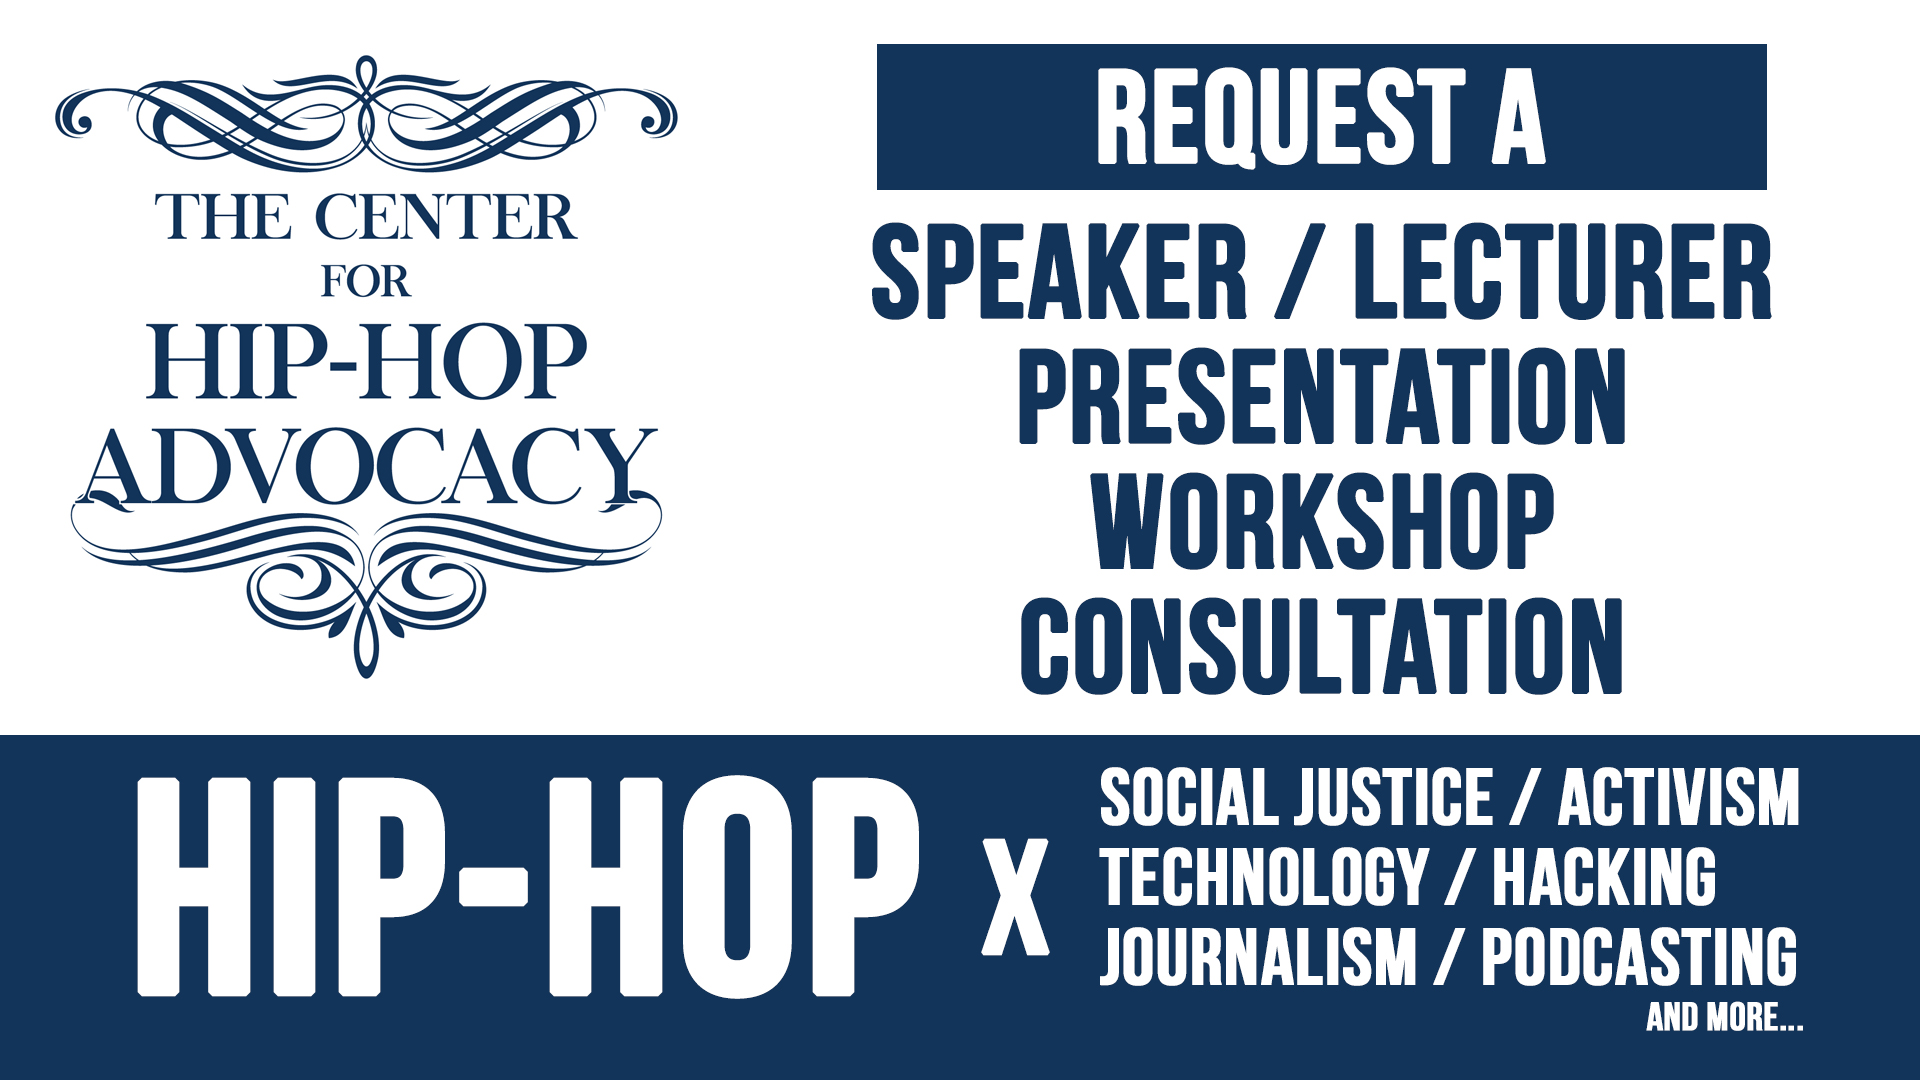 Hip-hop public speaker, presentation, workshop inquiry